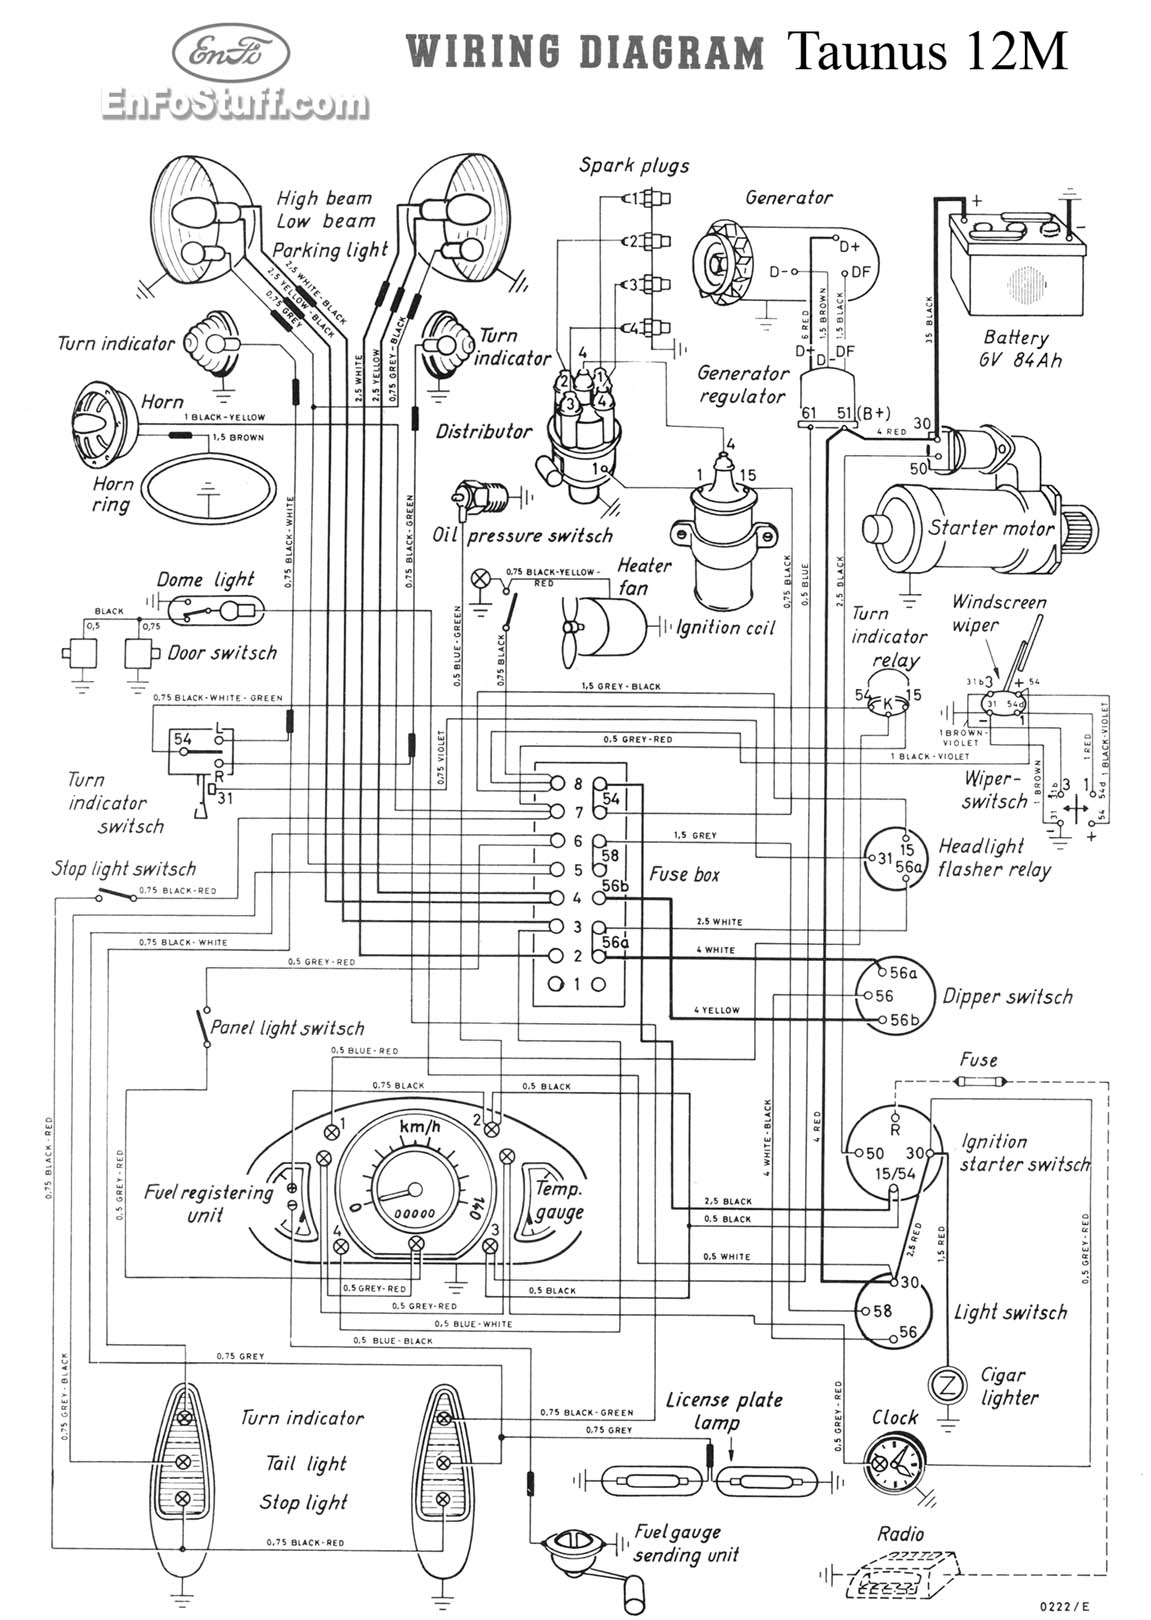 Wiring Diagram Vw Golf 1